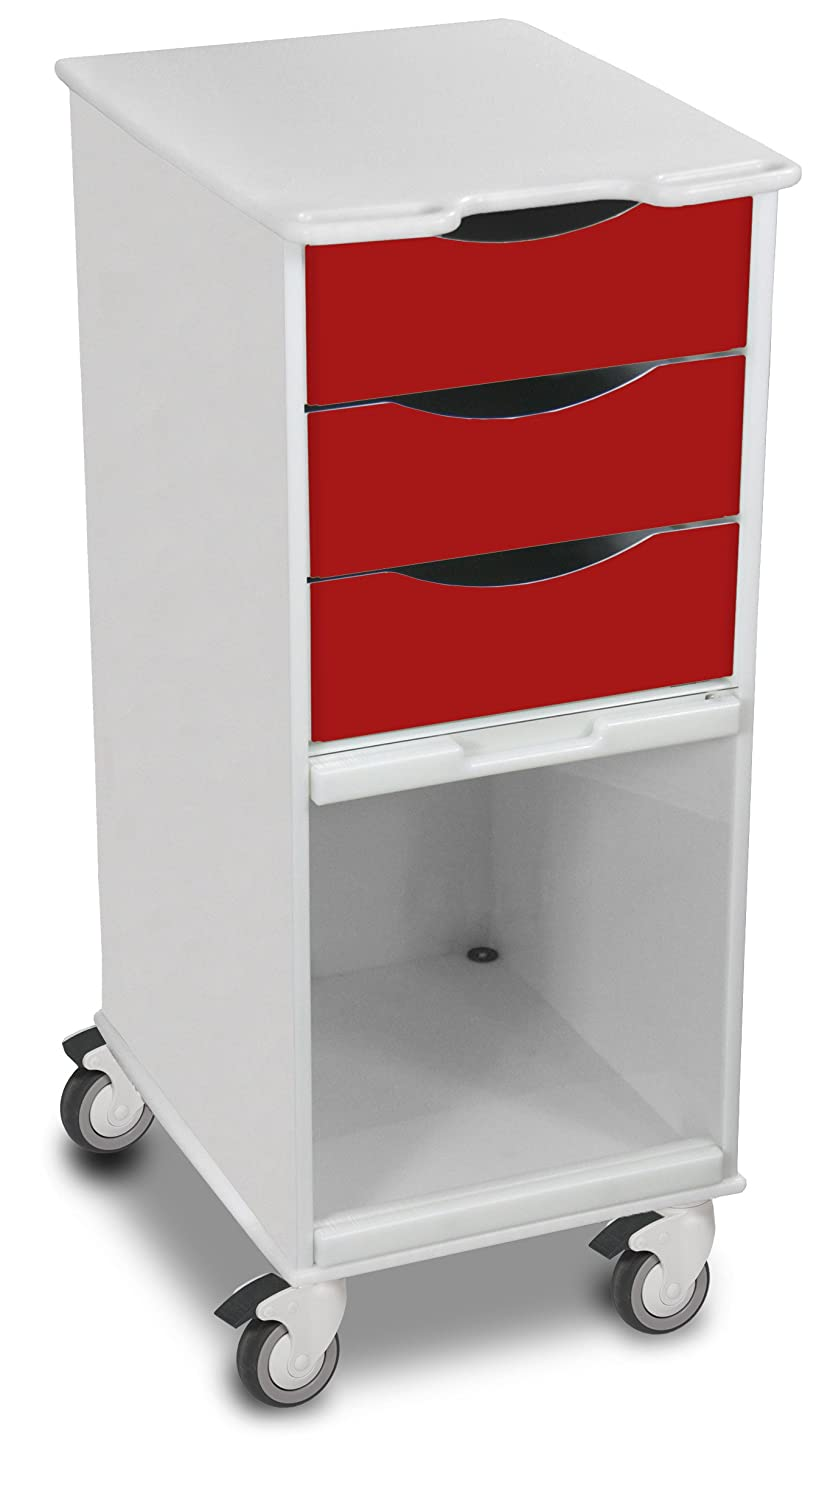 TrippNT 51186 Polyethylene Core SP Space Saving Locking Lab Cart with Clear PETG Door, 15 Width, 35 Height x 19 Depth, Cherry Red and White